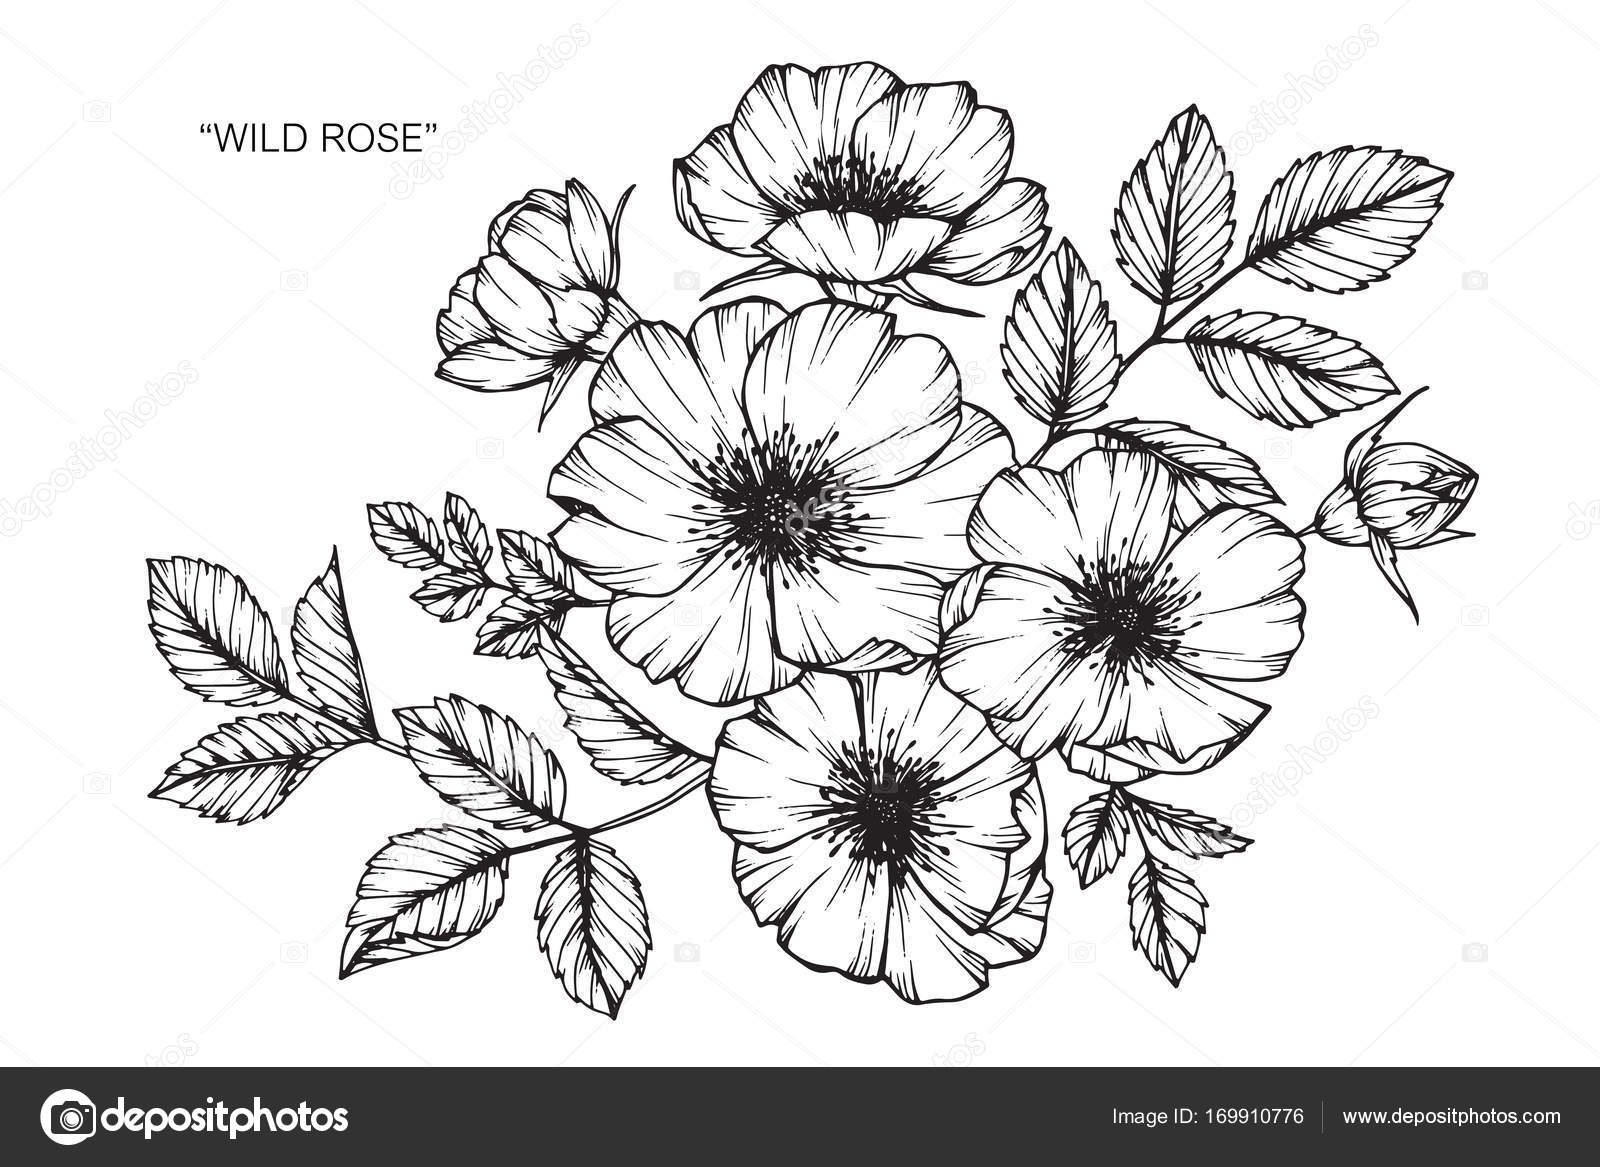 Wild rose flower drawing and sketch with black and white line art wild rose flower drawing and sketch with black and white line art mightylinksfo Image collections